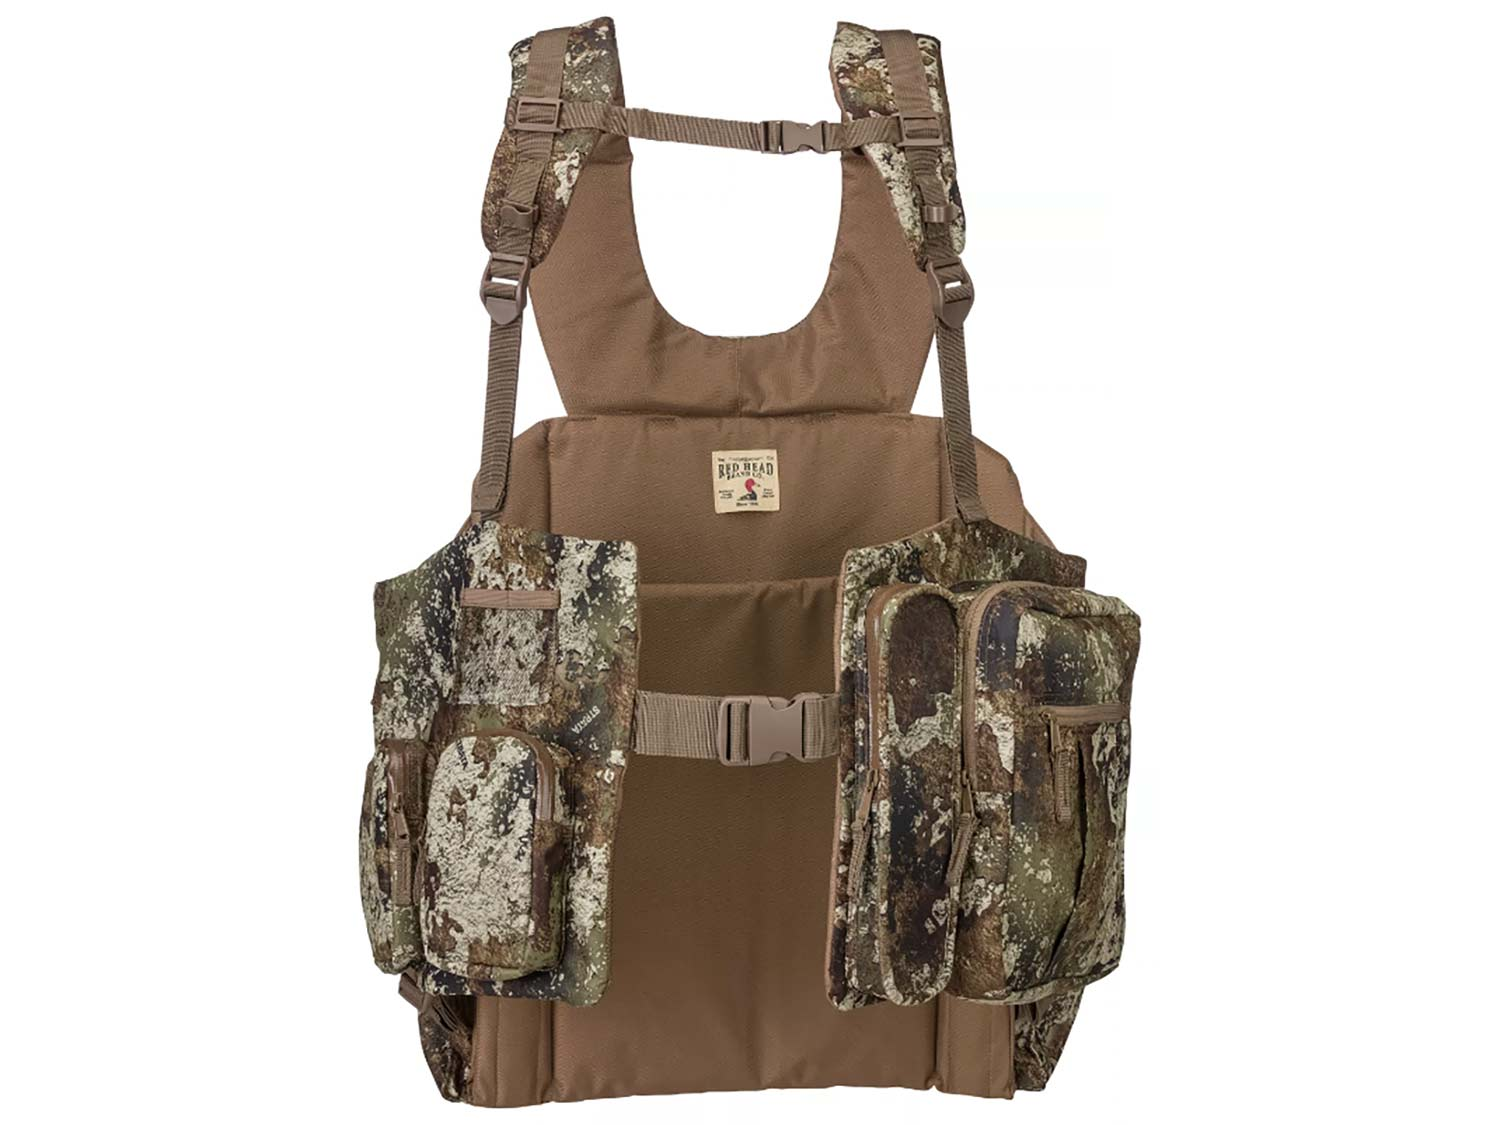 RedHead Bucklick Creek Turkey Lounger Vest is one of the best turkey hunting vests.